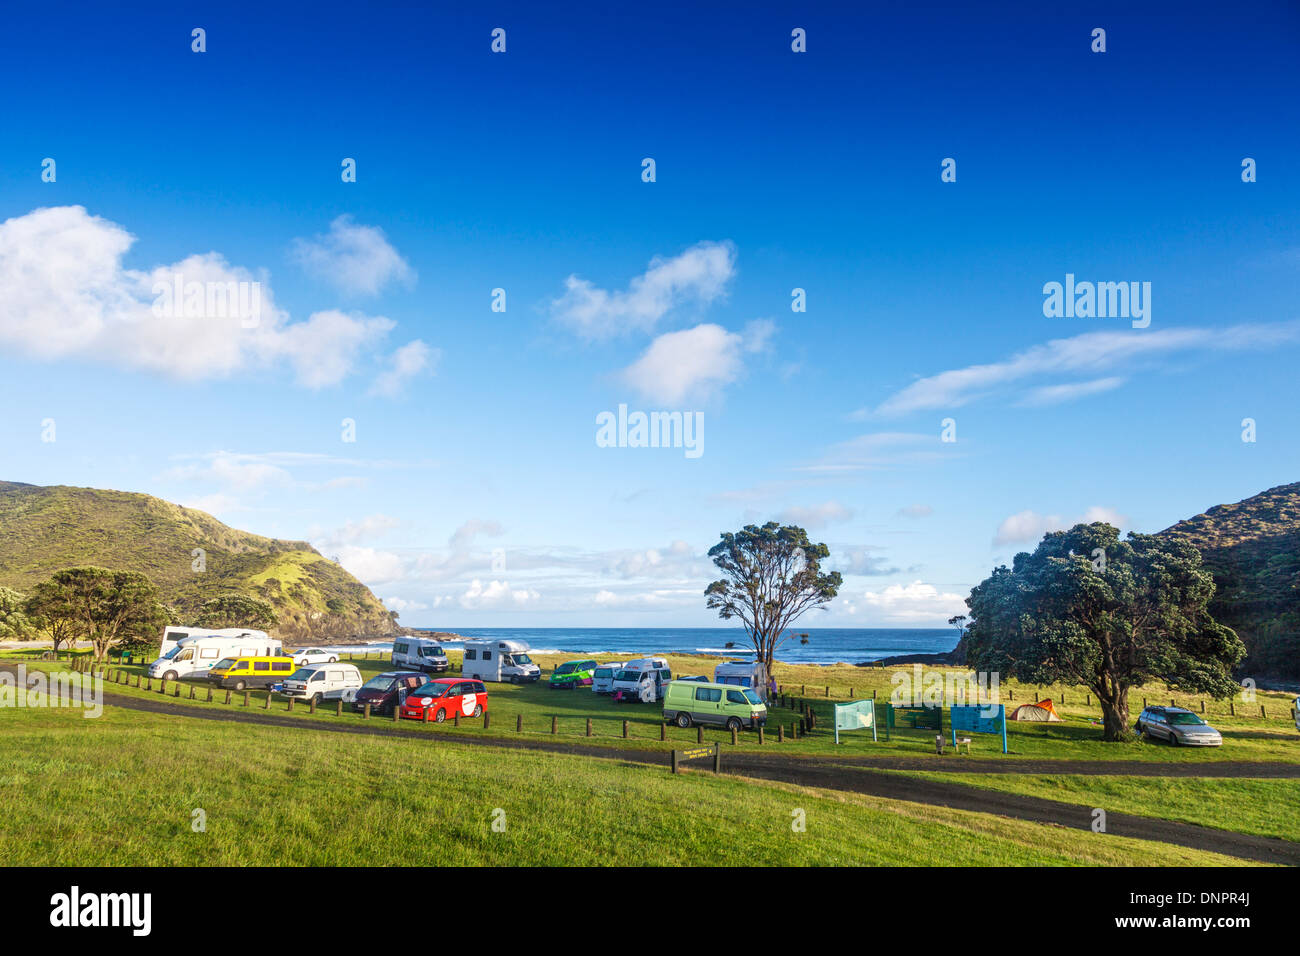 Department of Conservation campsite at Tapotupotu Bay, Cape Reinga, Northland, New Zealand. These DOC... - Stock Image